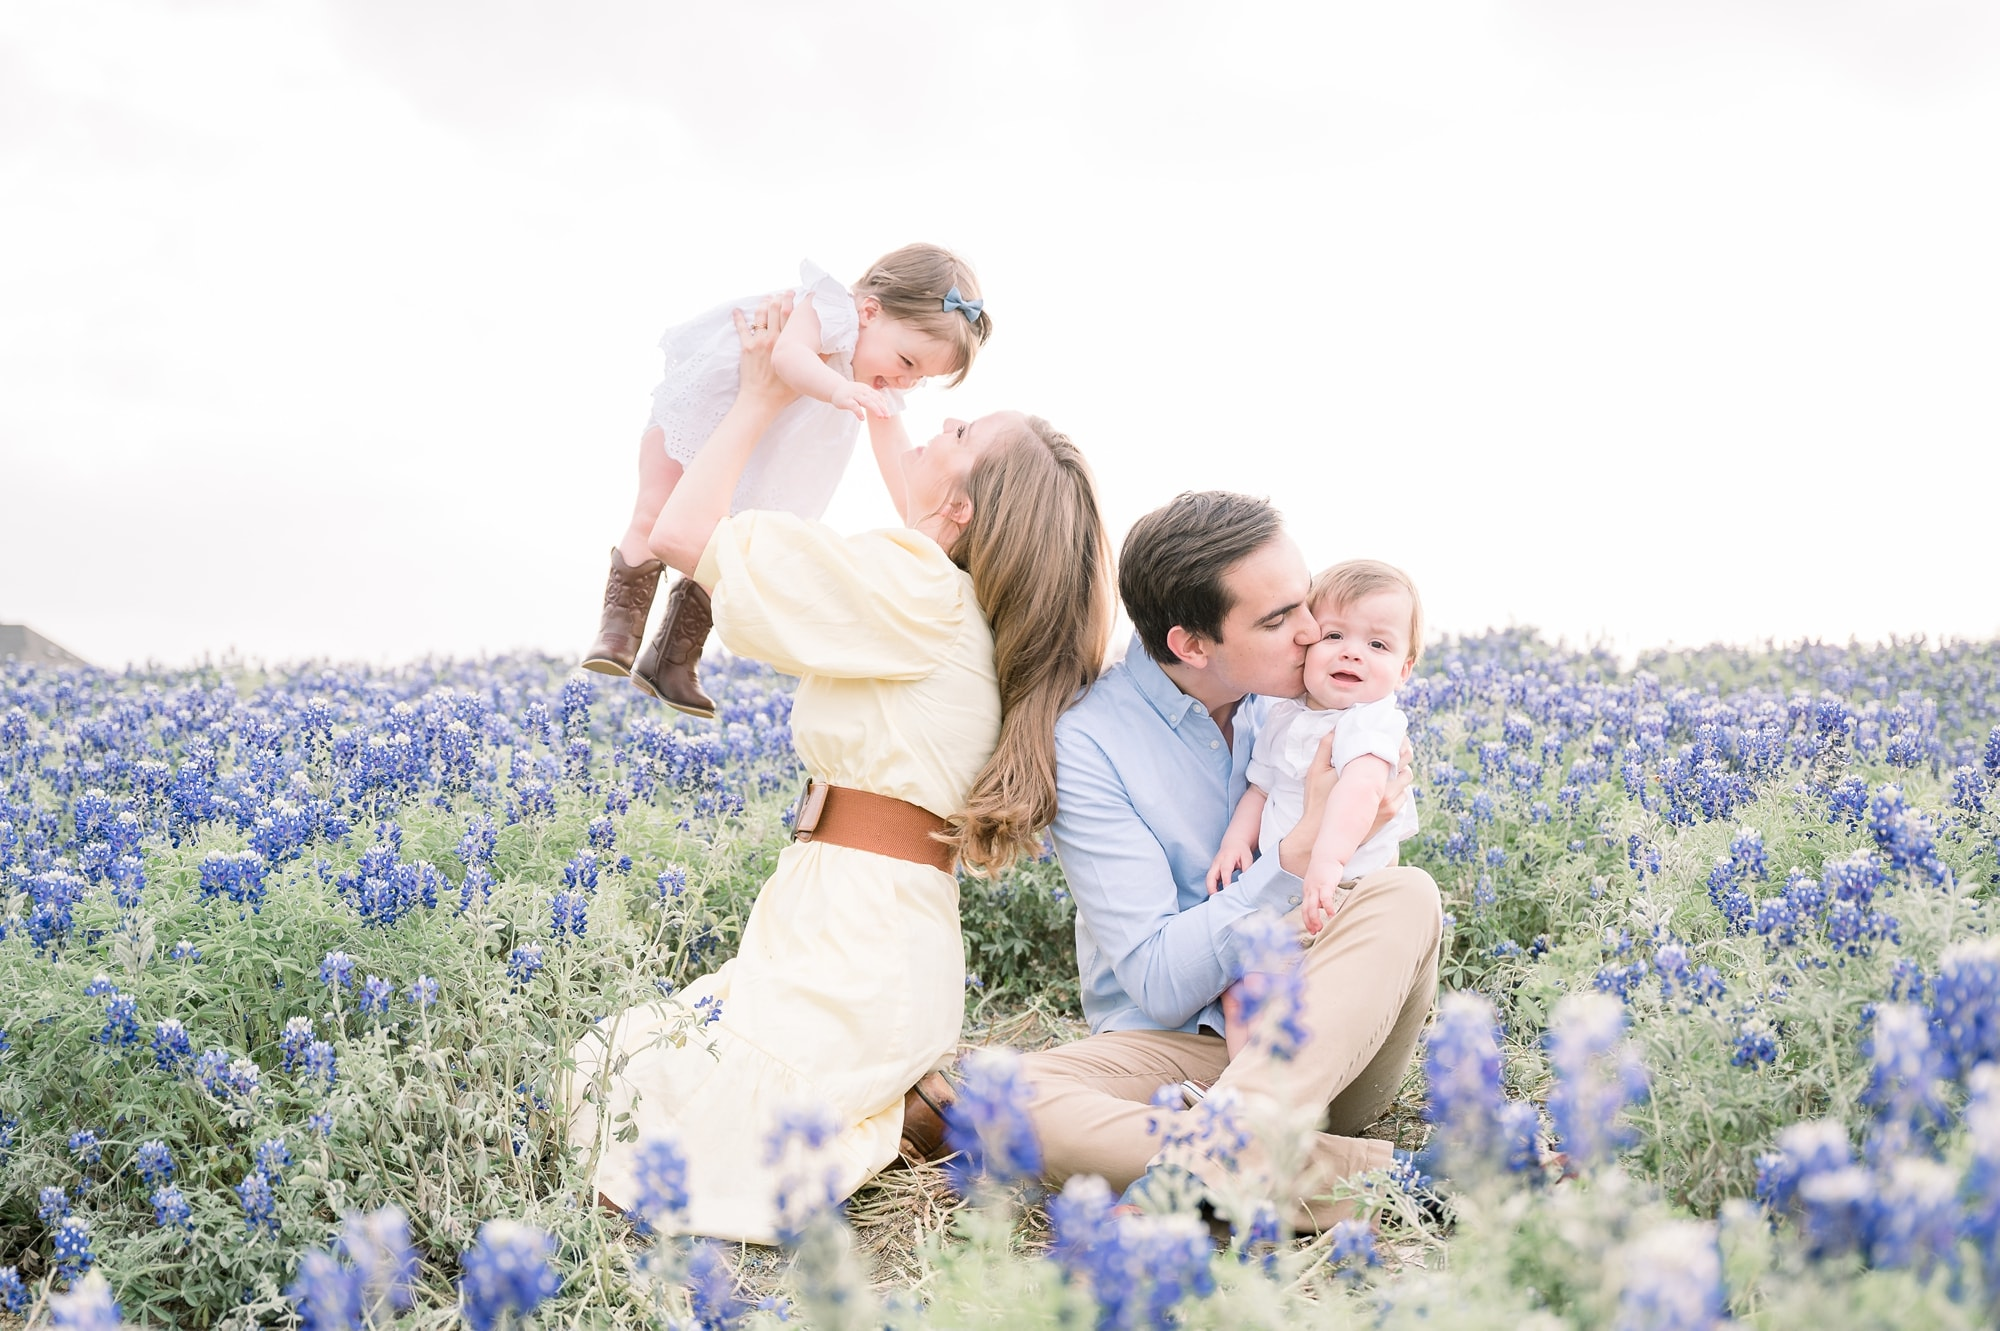 Parents playing and cuddling with twins in field of bluebonnet flowers. Photo by Prosper family photographer, Aimee Hamilton Photography.